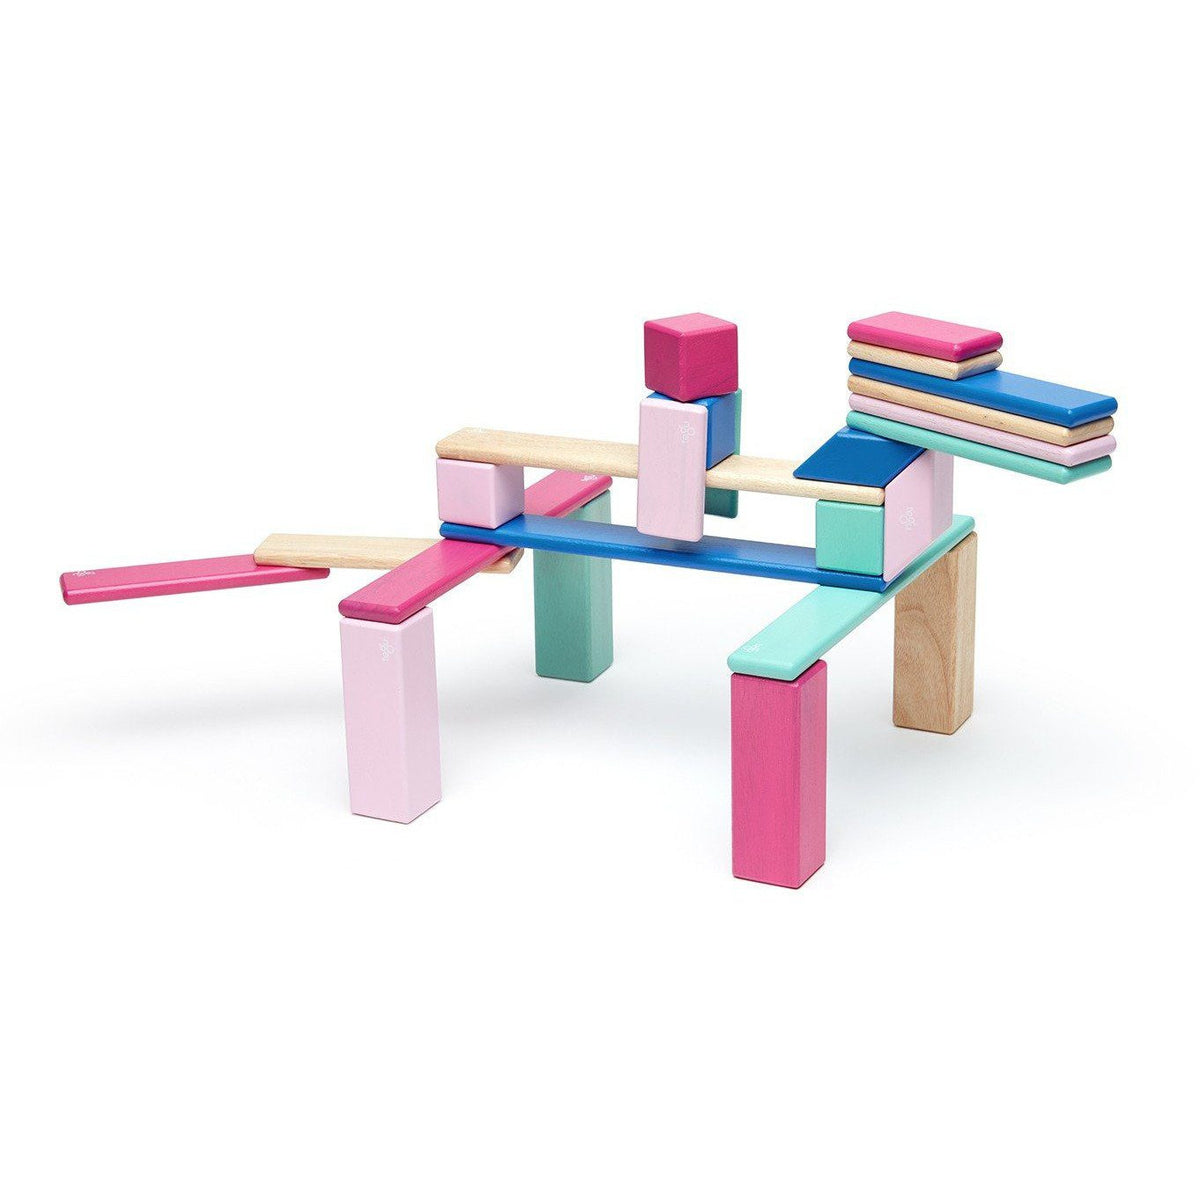 Tegu 24 Piece Magnetic Wooden Block Set: Blossom